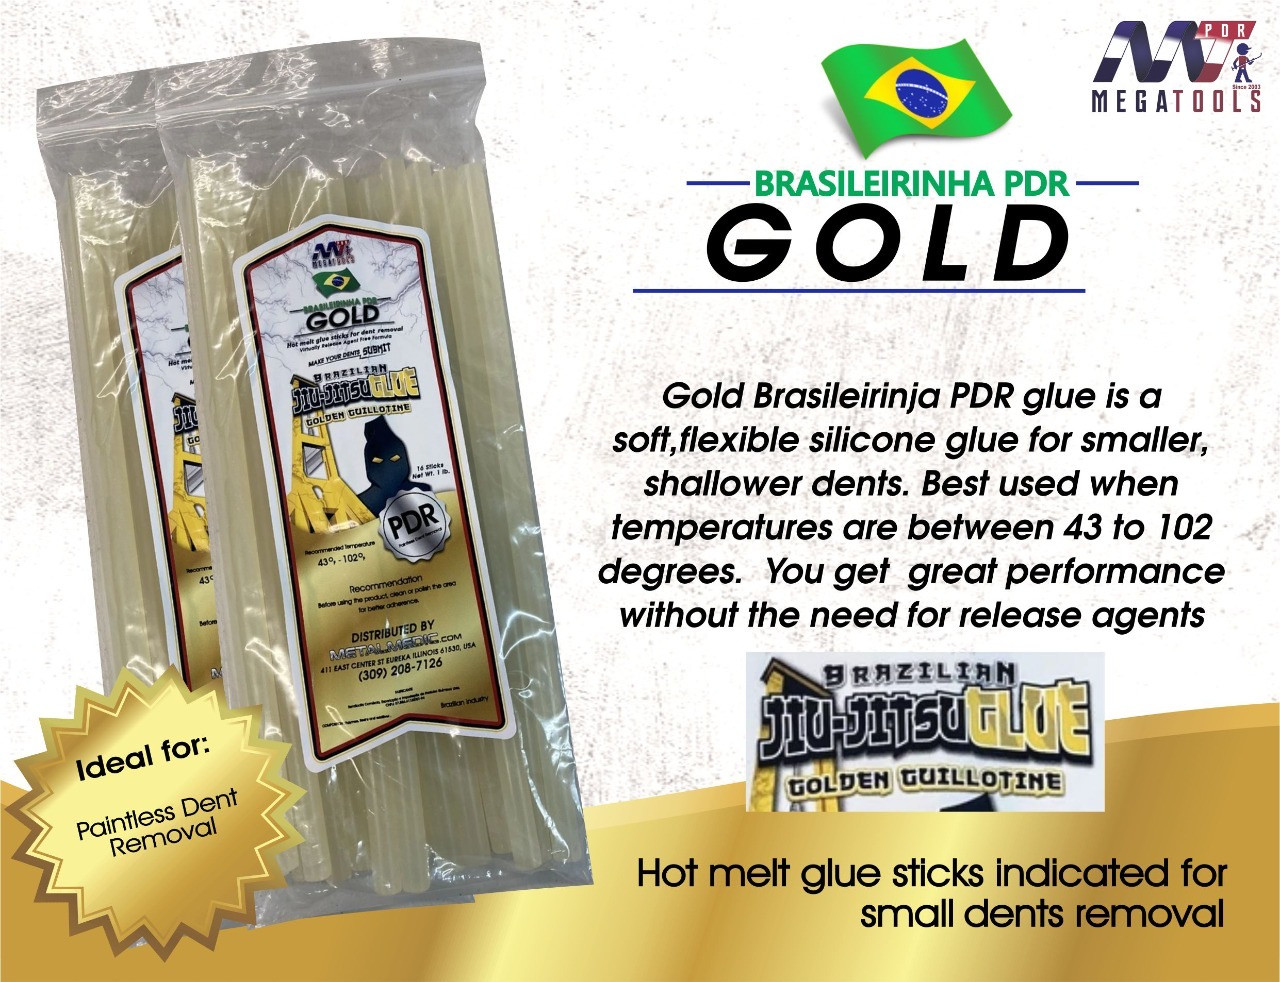 Brazilian Gold PDR Glue